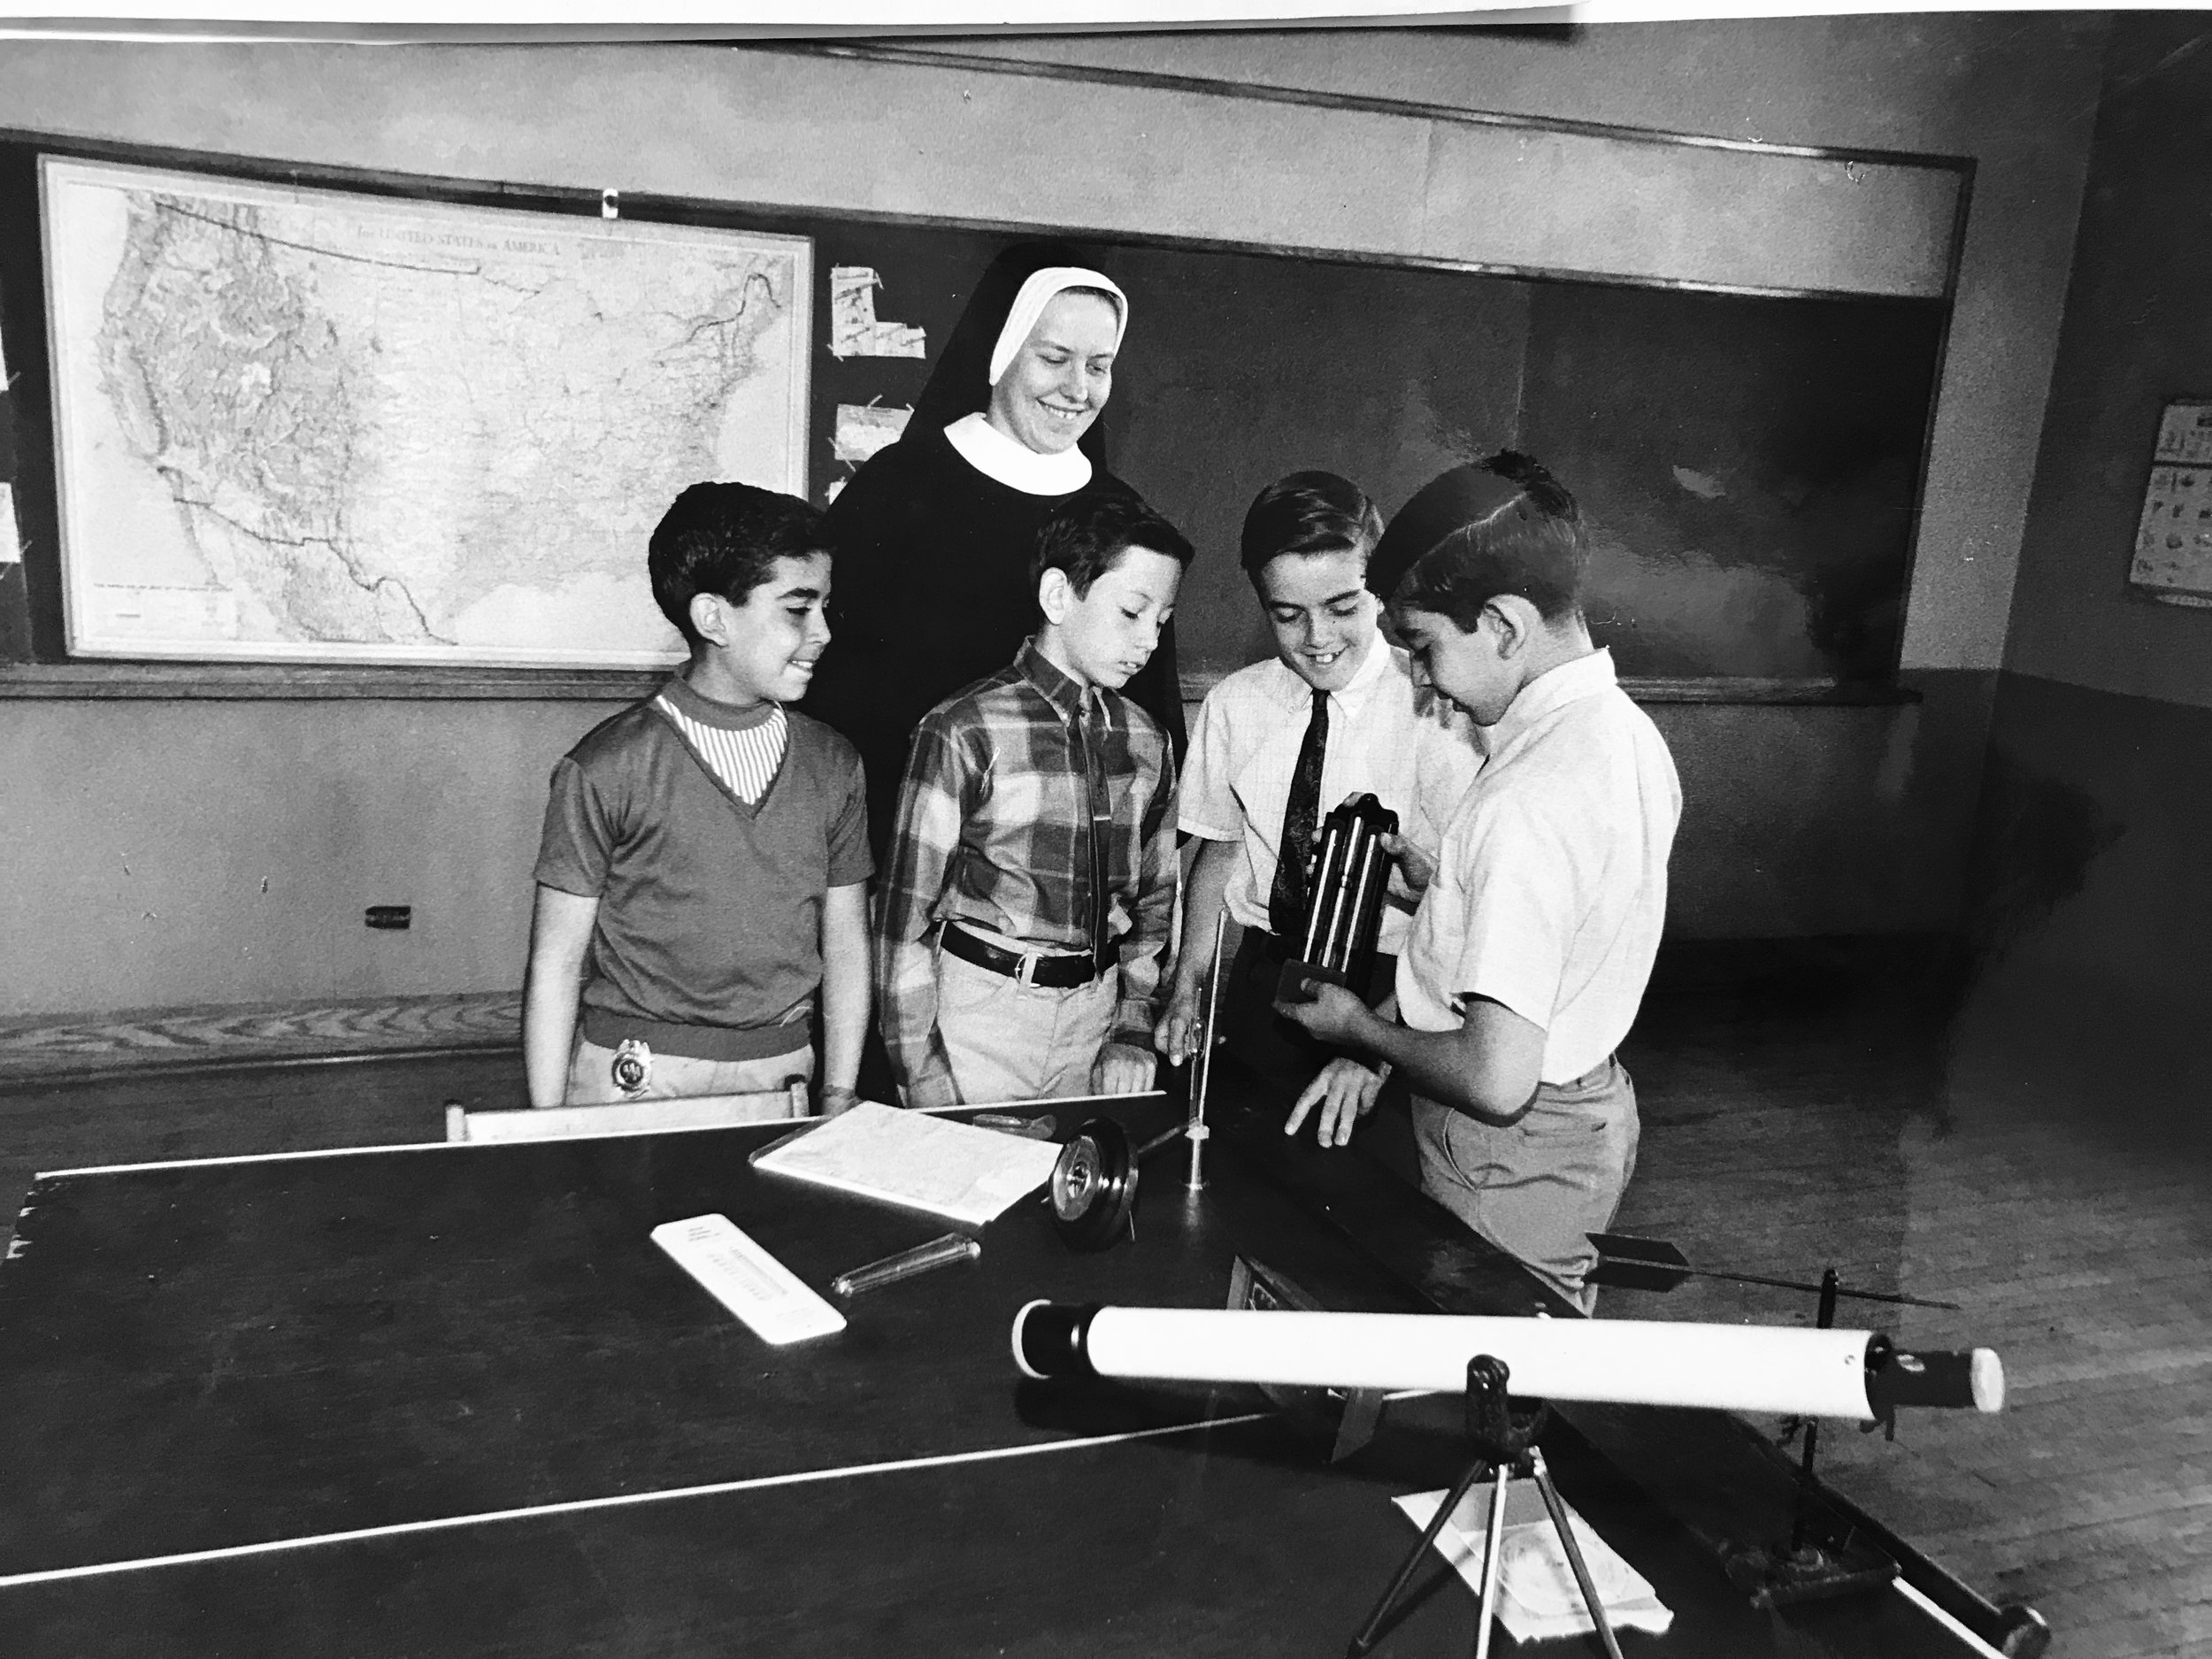 1968 - Urban Community School founded by the Ursuline Sisters of Cleveland and committed lay teachers located at St. Patrick and St. Malachi parishes